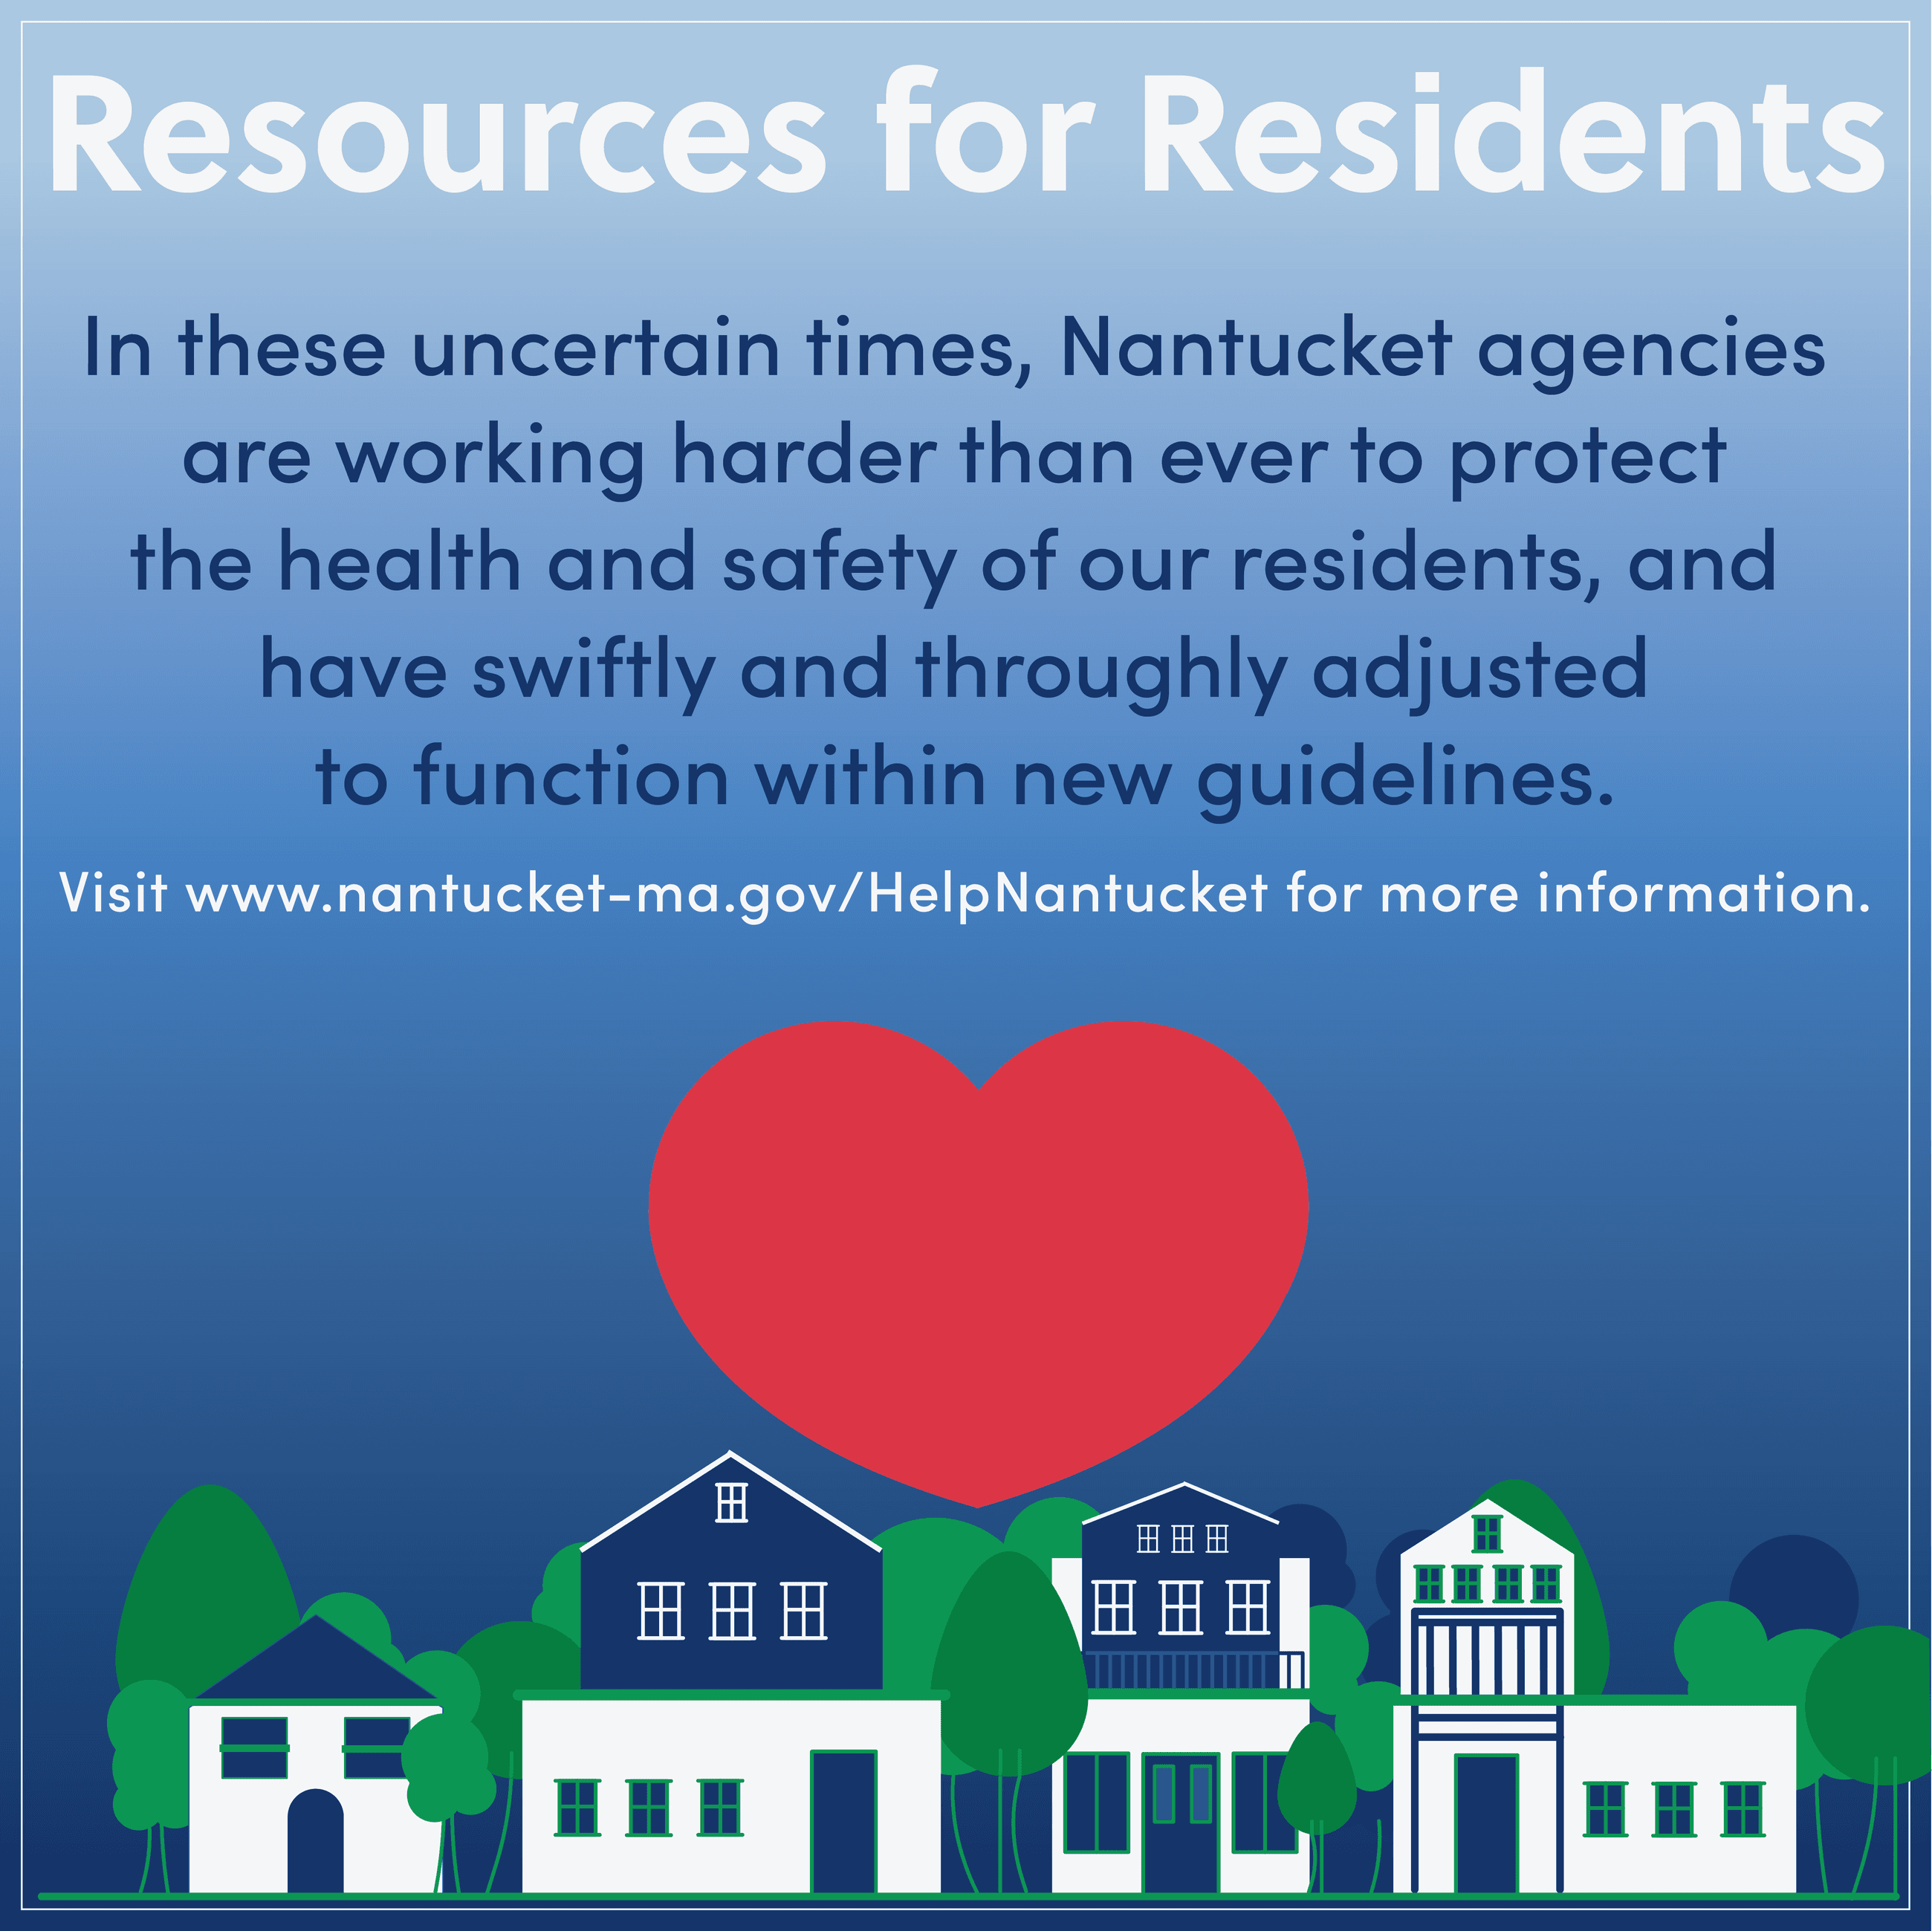 Resources for Residents